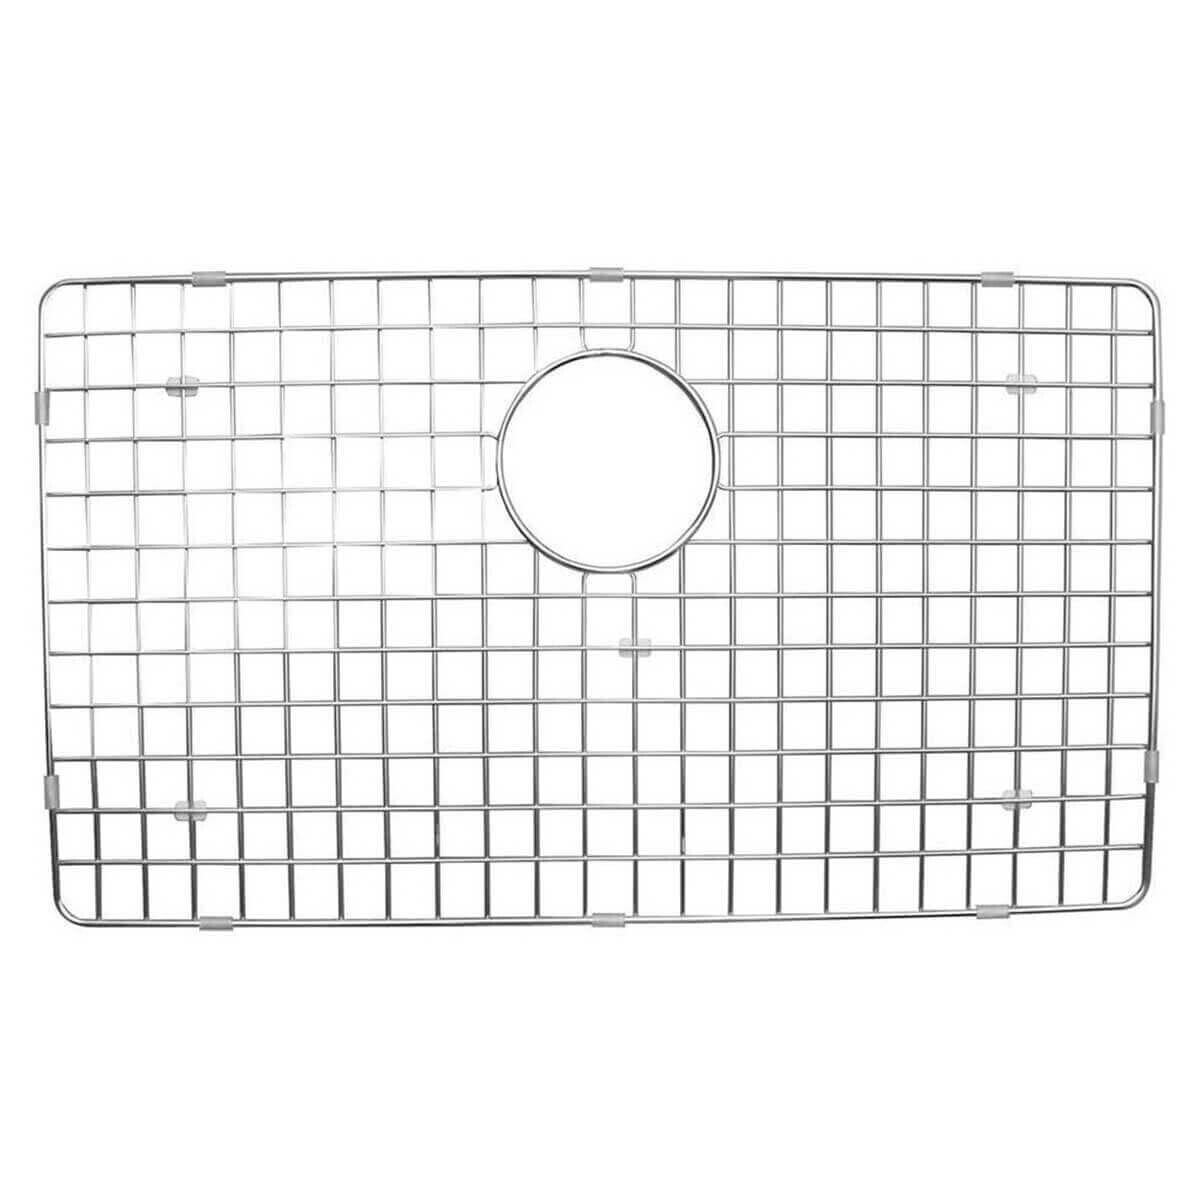 Artisan BG-2916S Stainless Steel Chef Pro Sink Grid